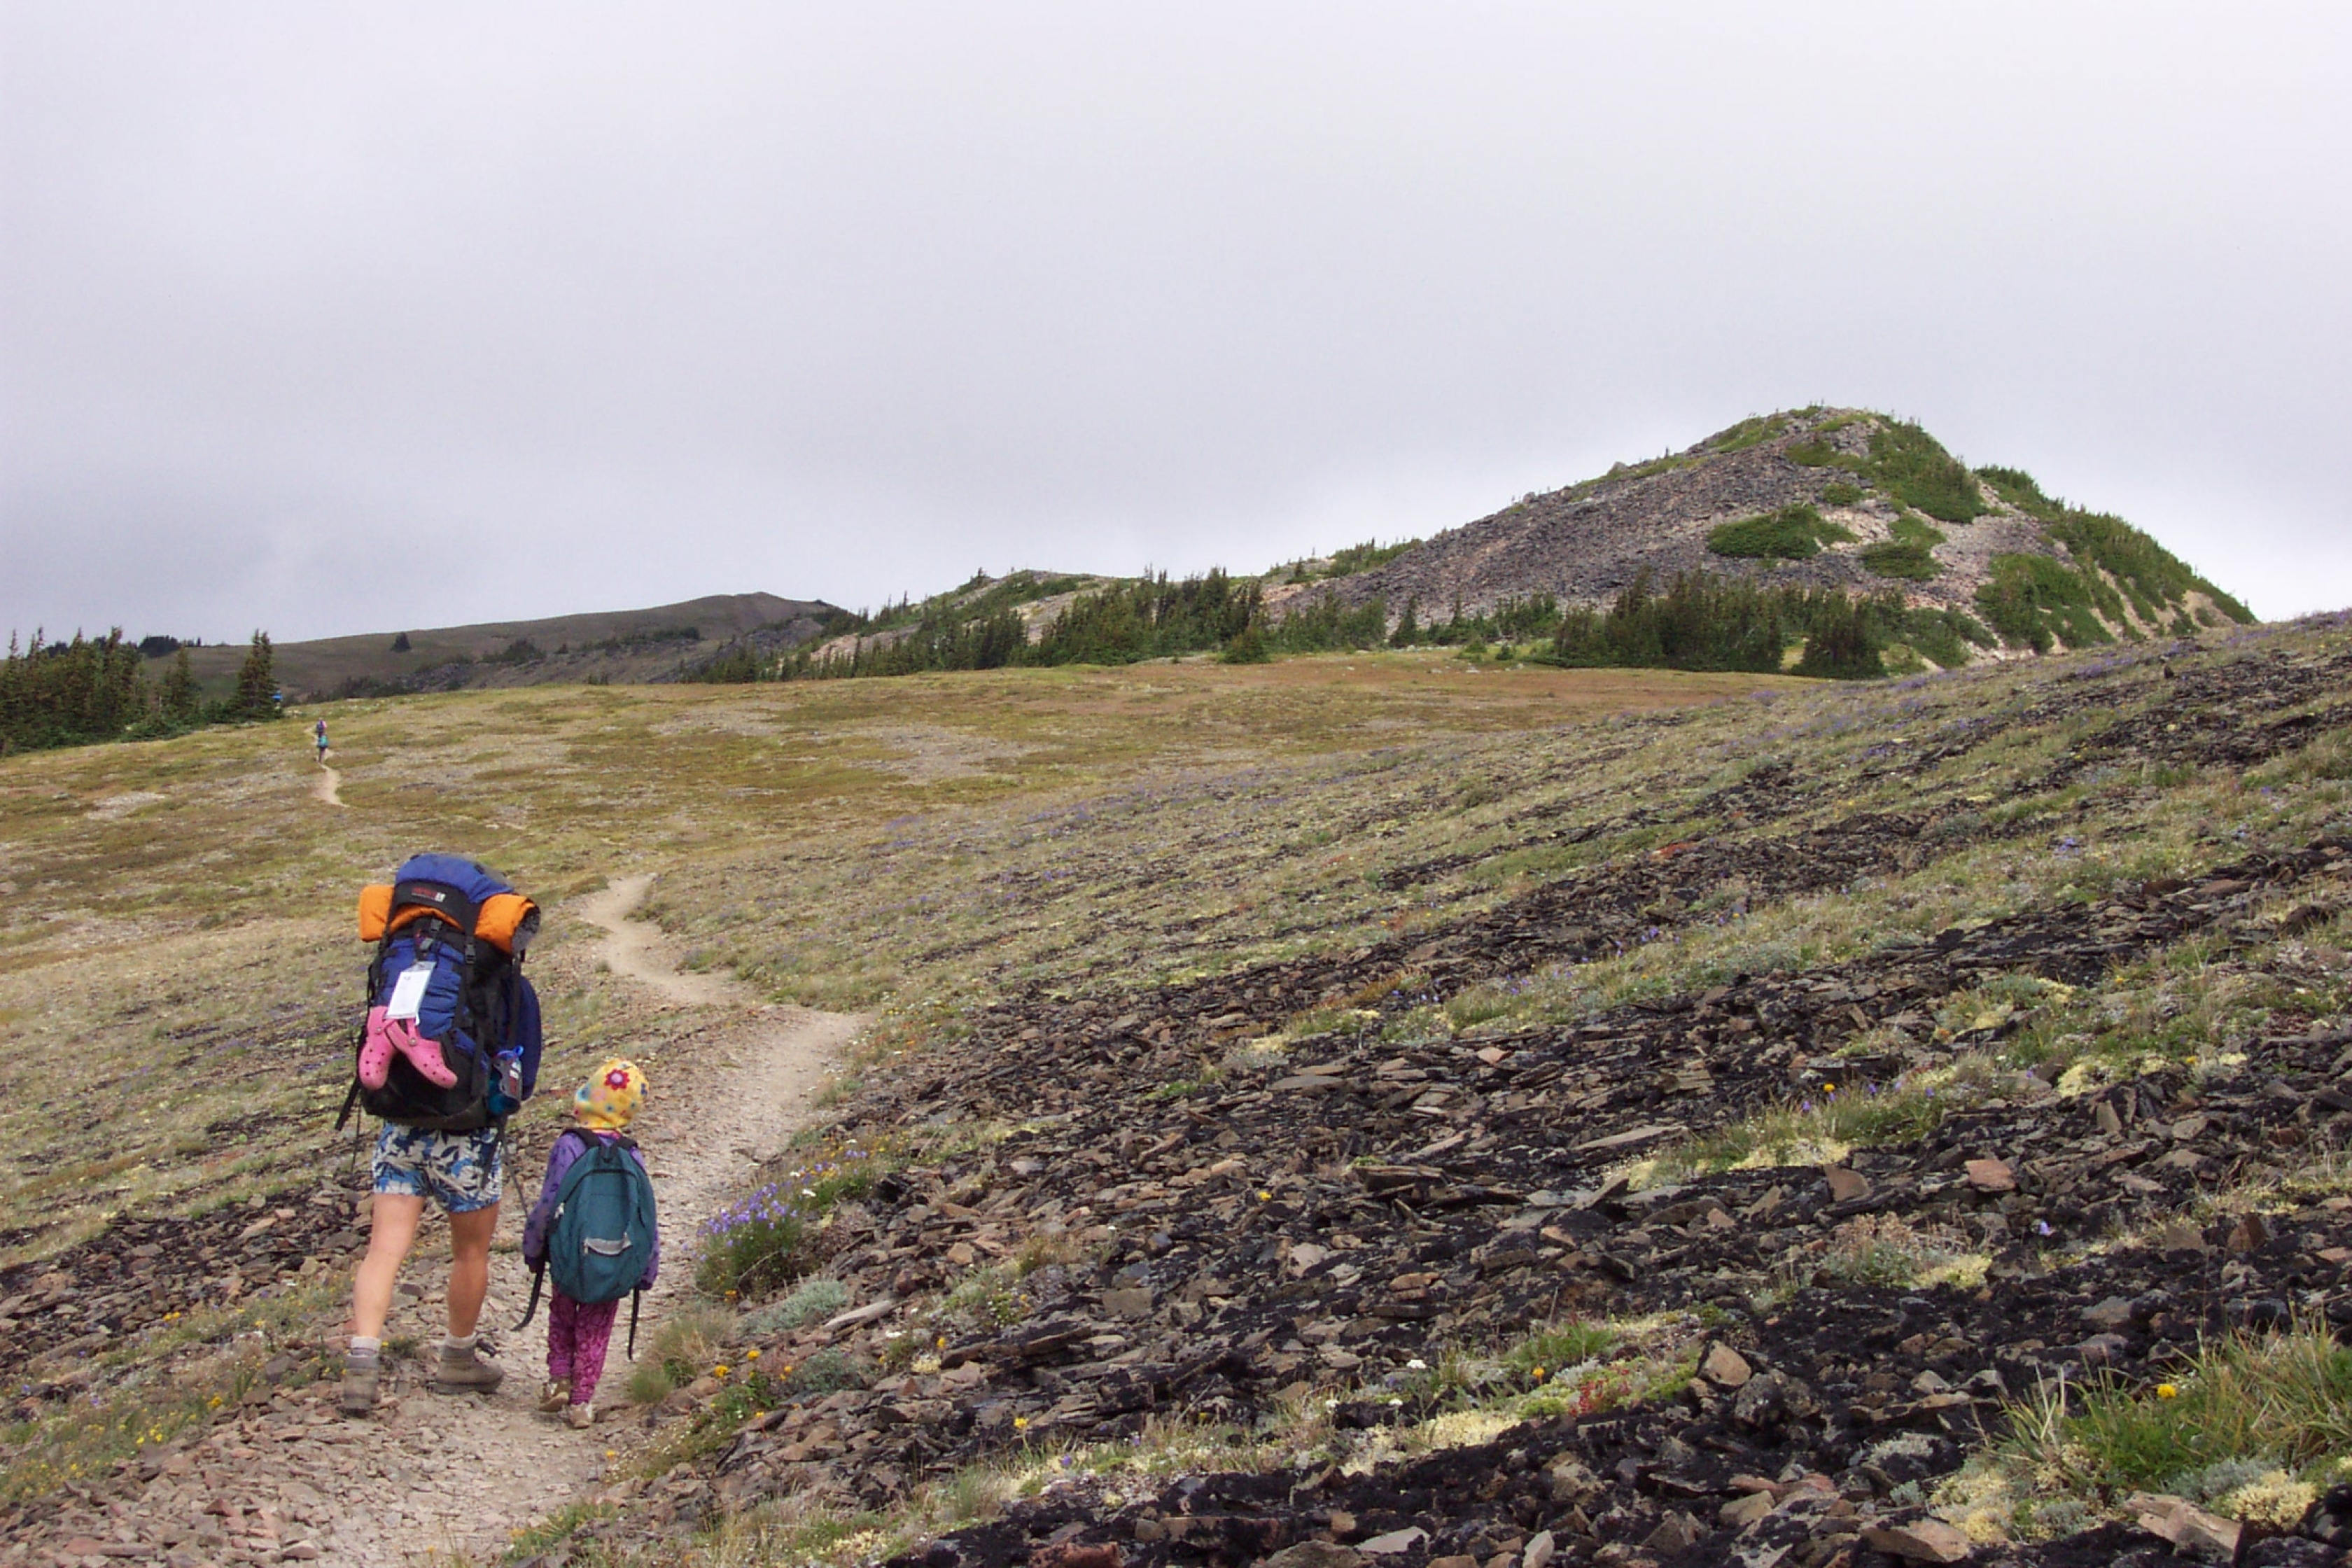 Child and adult backpacking on a trail at Olympic National Park